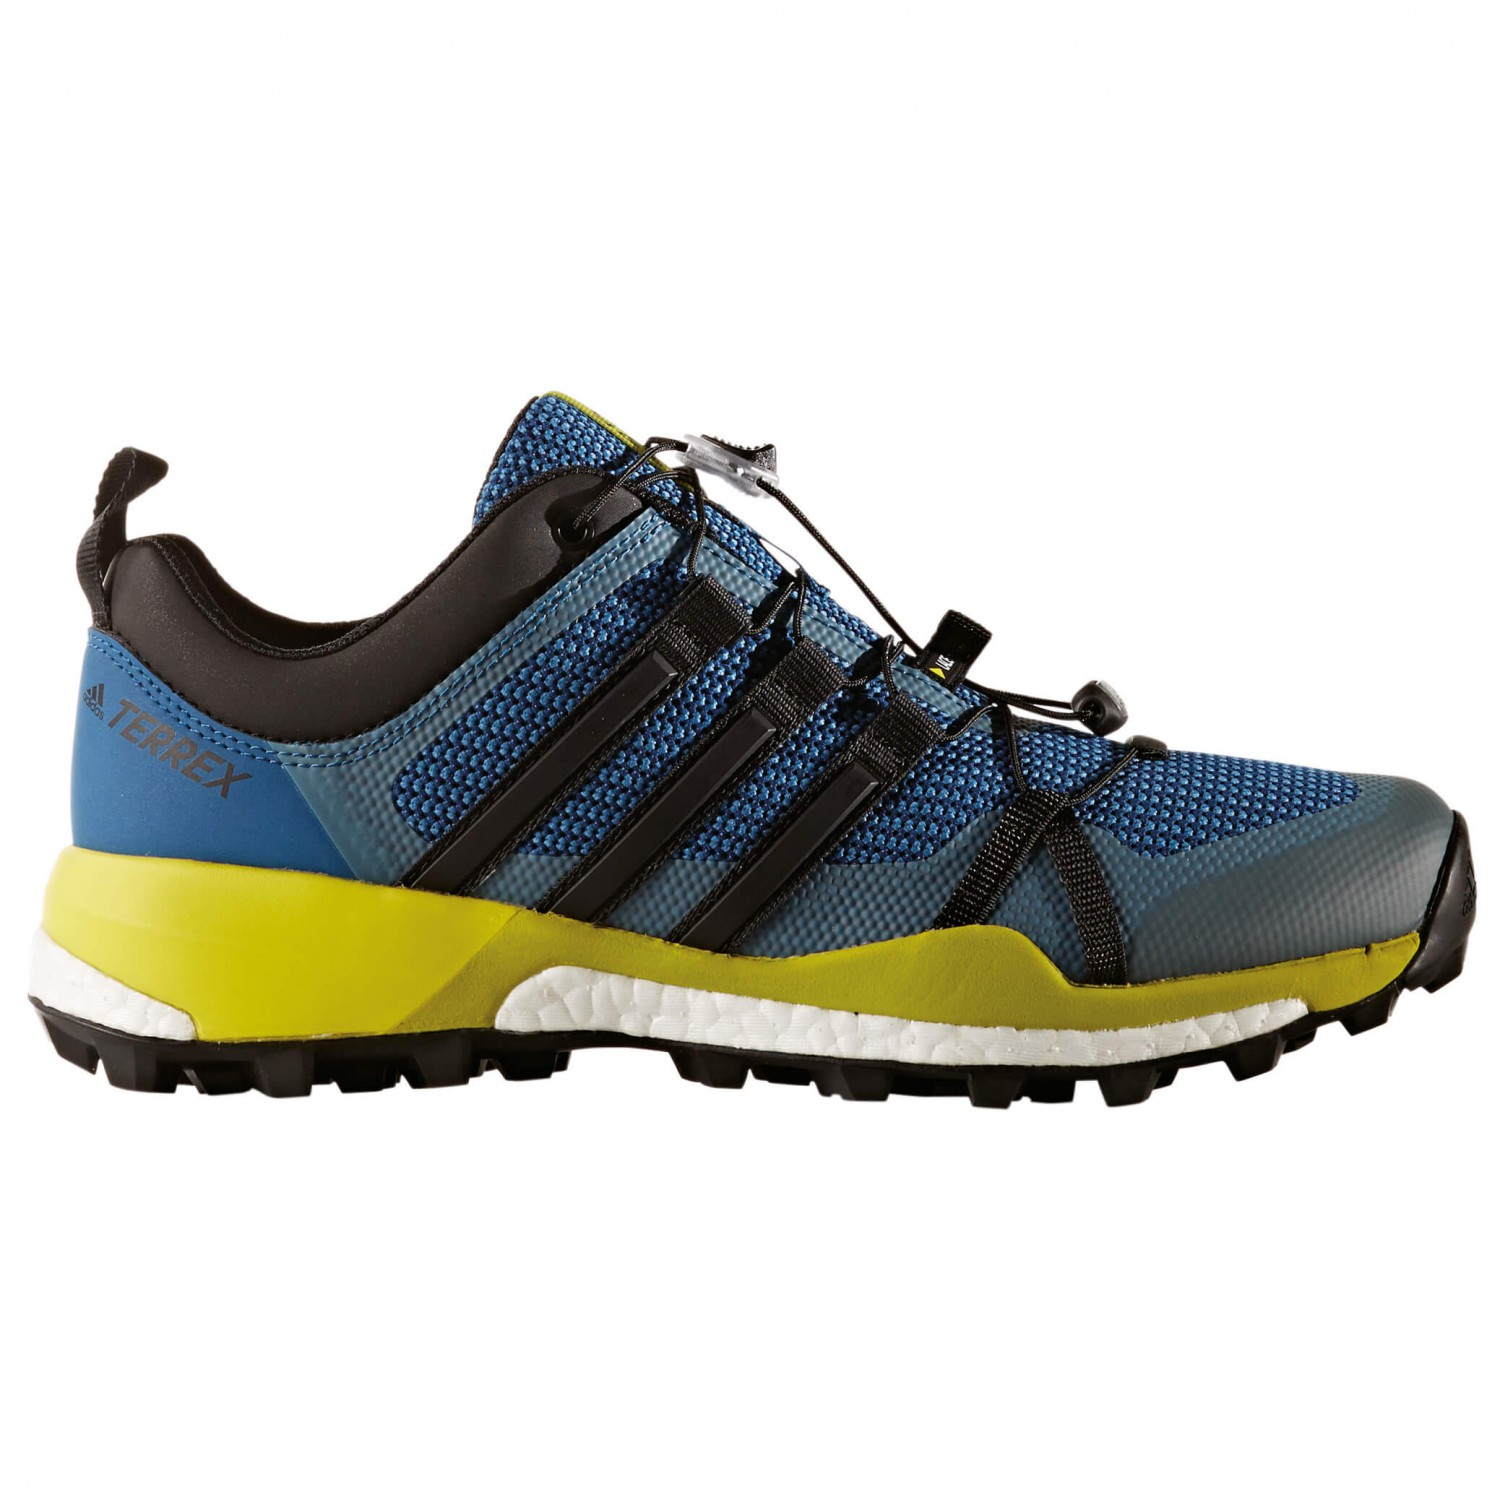 Terrex Adidas D'approche Skychaser Chaussures Adidas Chaussures Skychaser Terrex Adidas D'approche wN0vmny8O